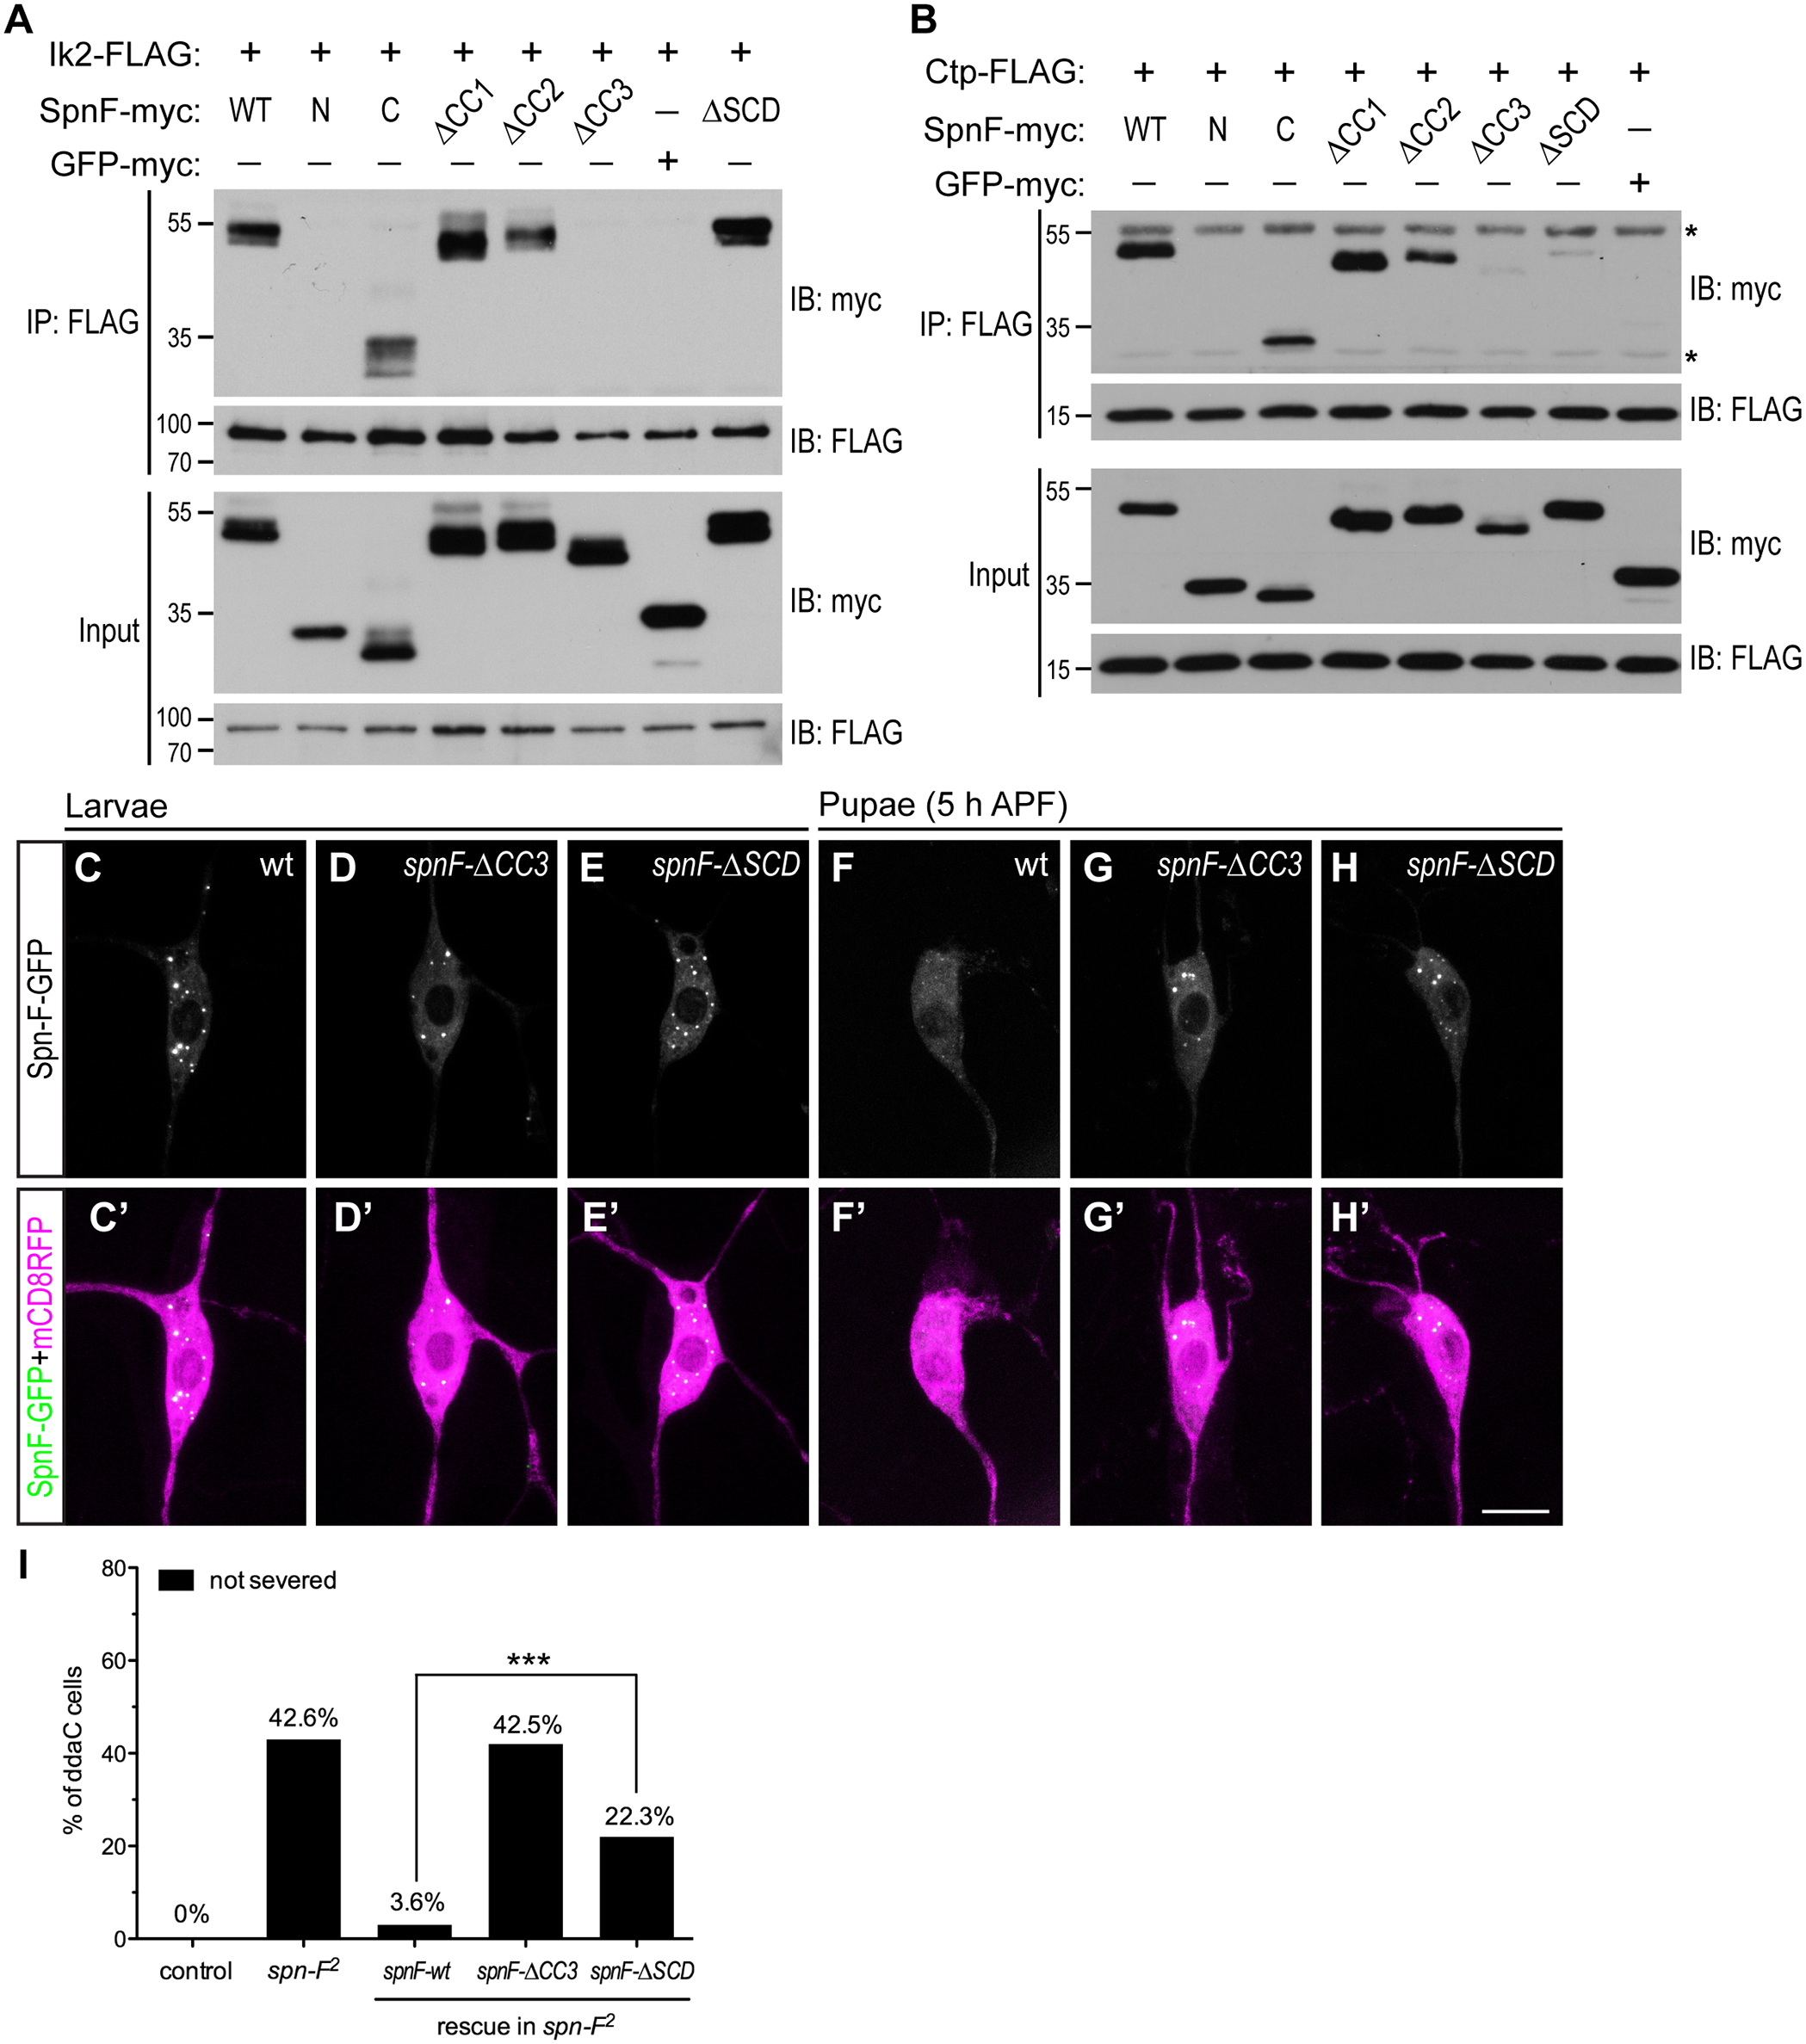 The formation of Ik2/Spn-F/Ctp complex is critical for Spn-F redistribution and dendrite pruning.